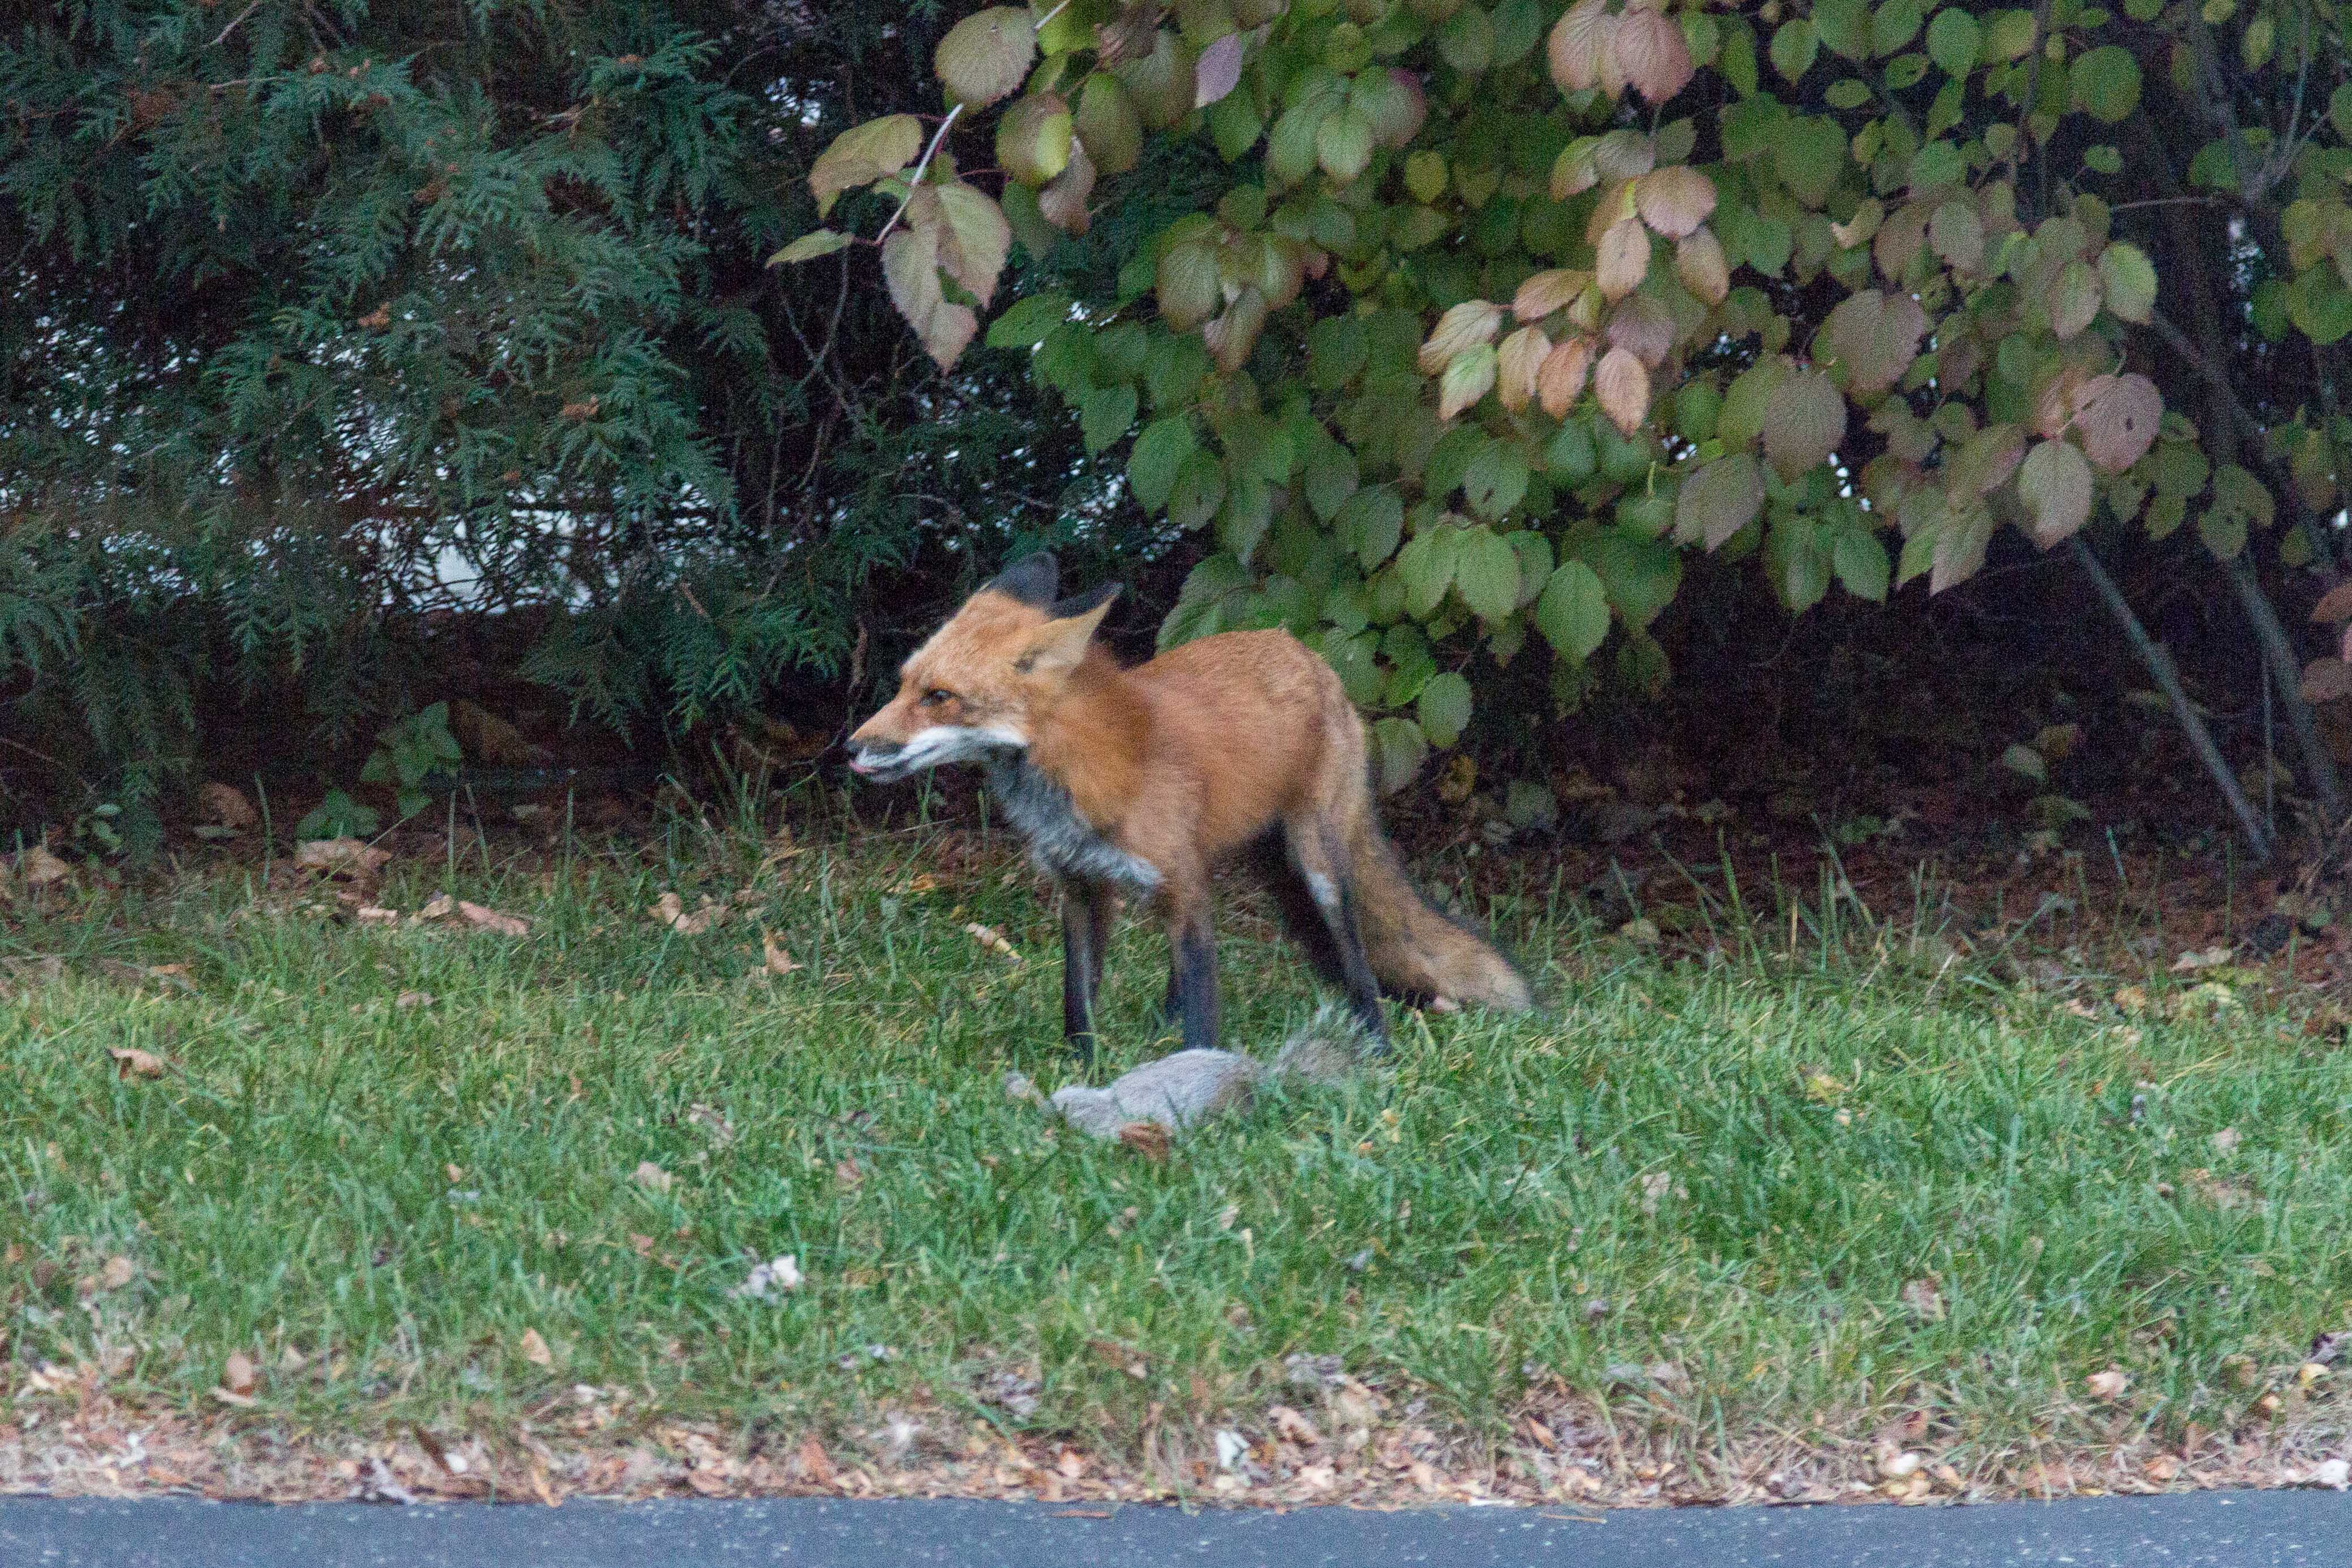 Fox in the Yard with a Squirrel - Southeast WI | https://www.roseclearfield.com